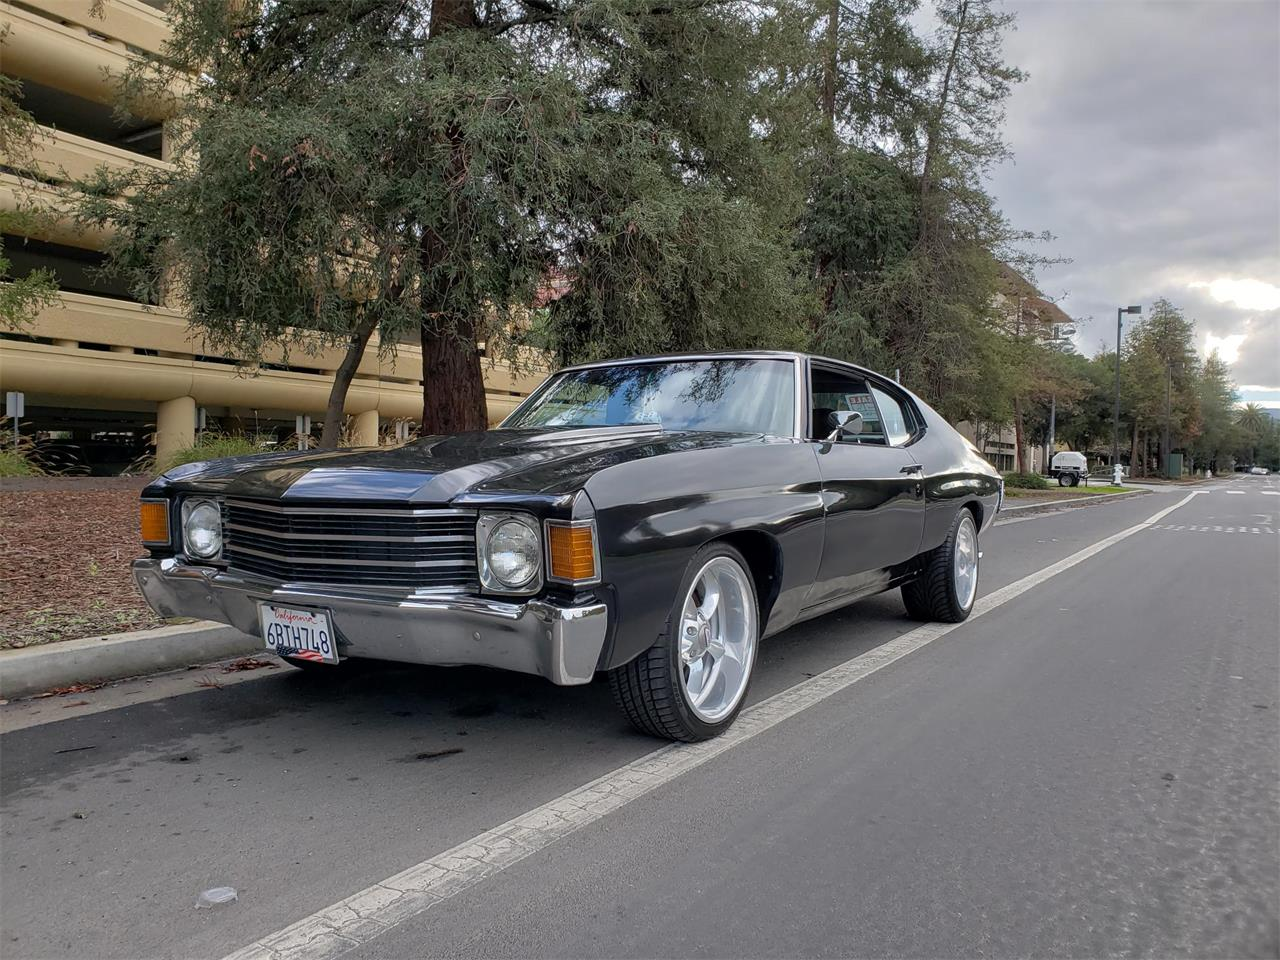 Large Picture of 1972 Chevrolet Chevelle Malibu located in California - $25,000.00 Offered by a Private Seller - PP62